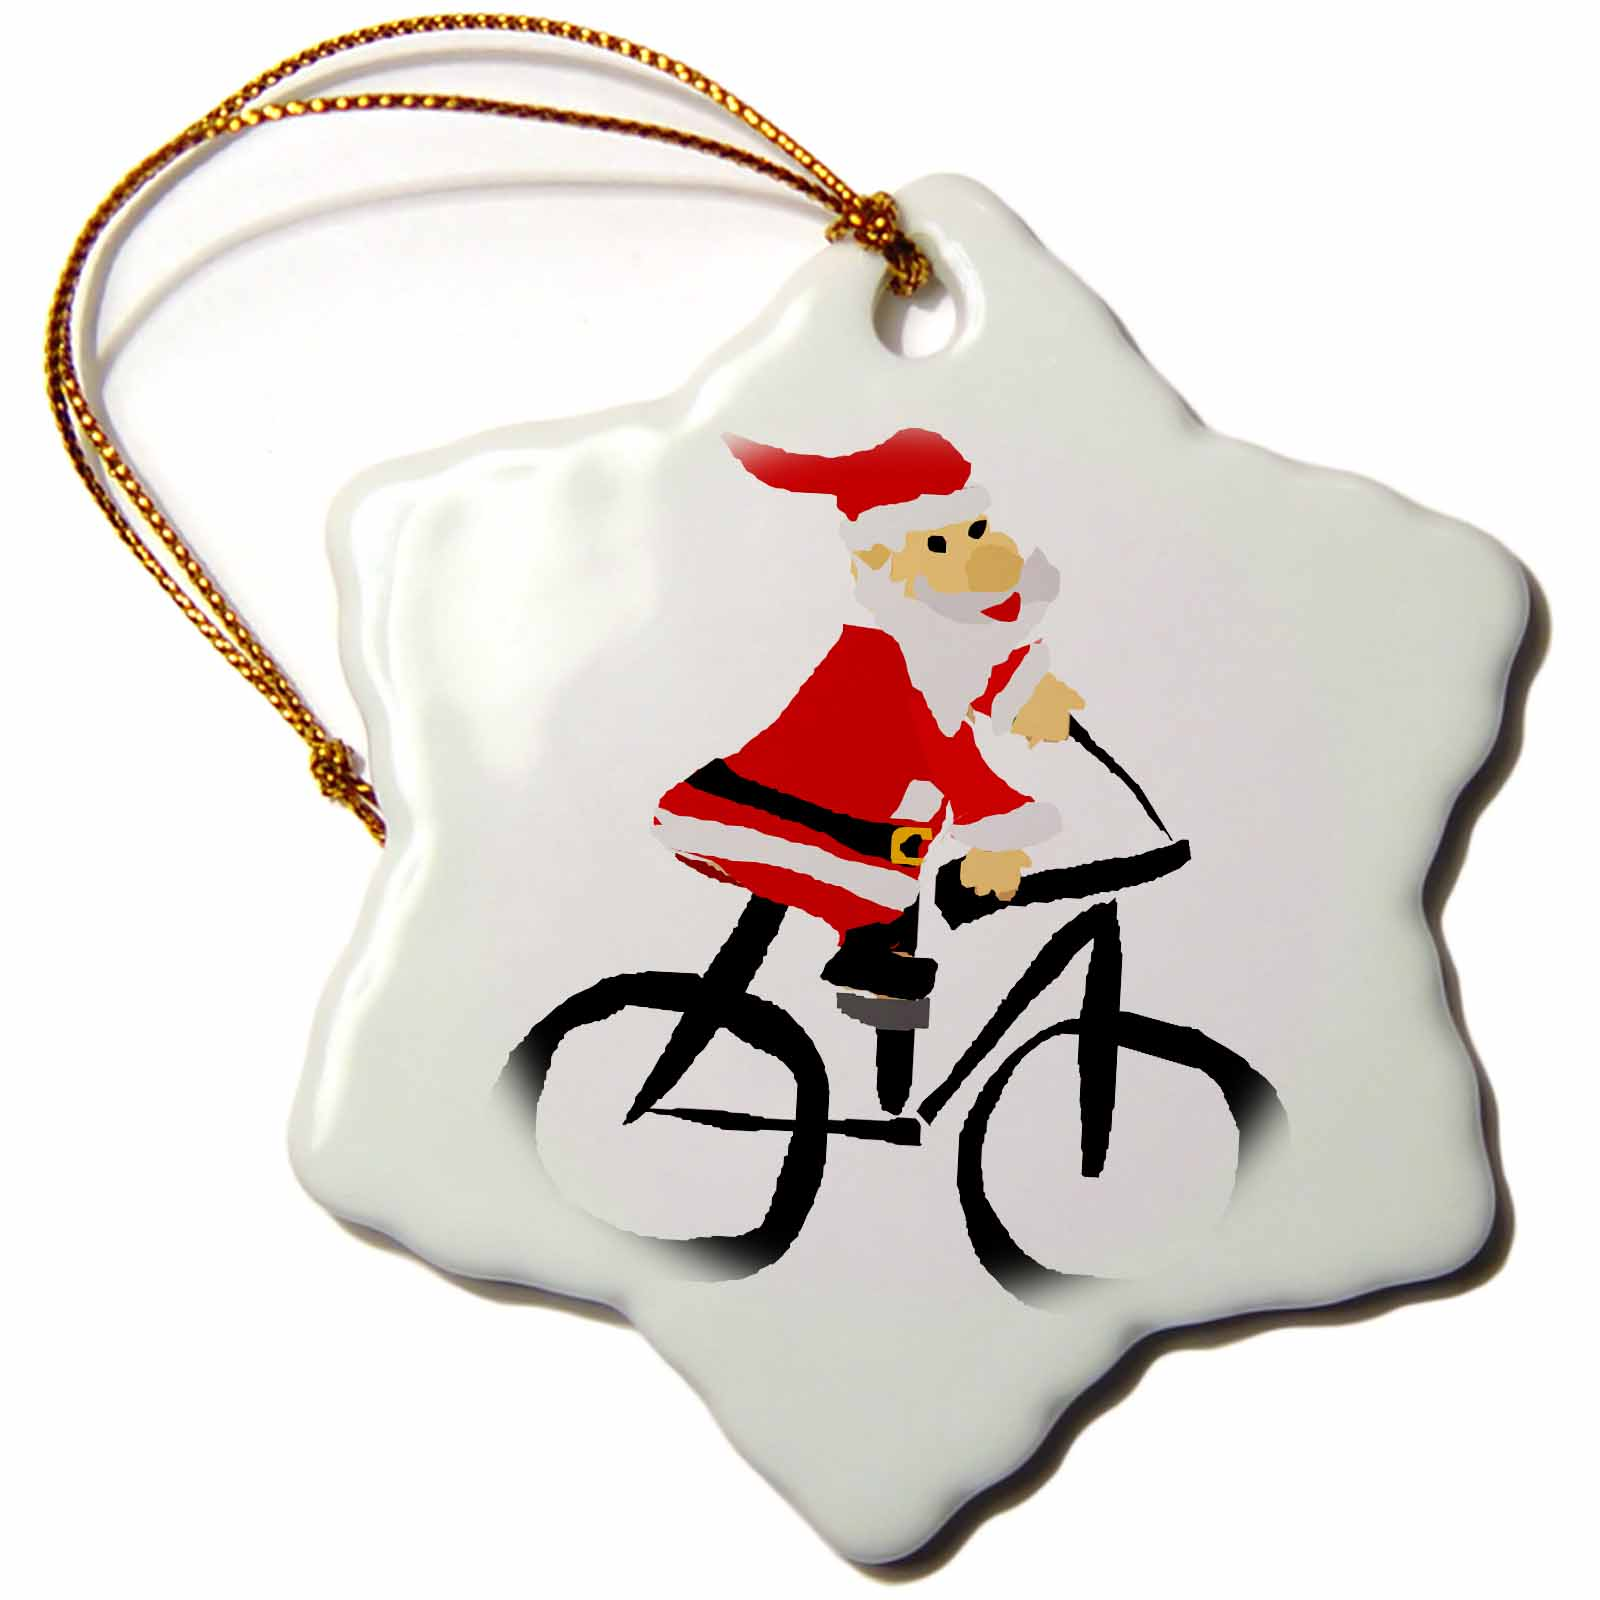 3dRose Funny Santa Claus Riding a Bicycle Christmas Art, Snowflake Ornament, Porcelain, 3-inch